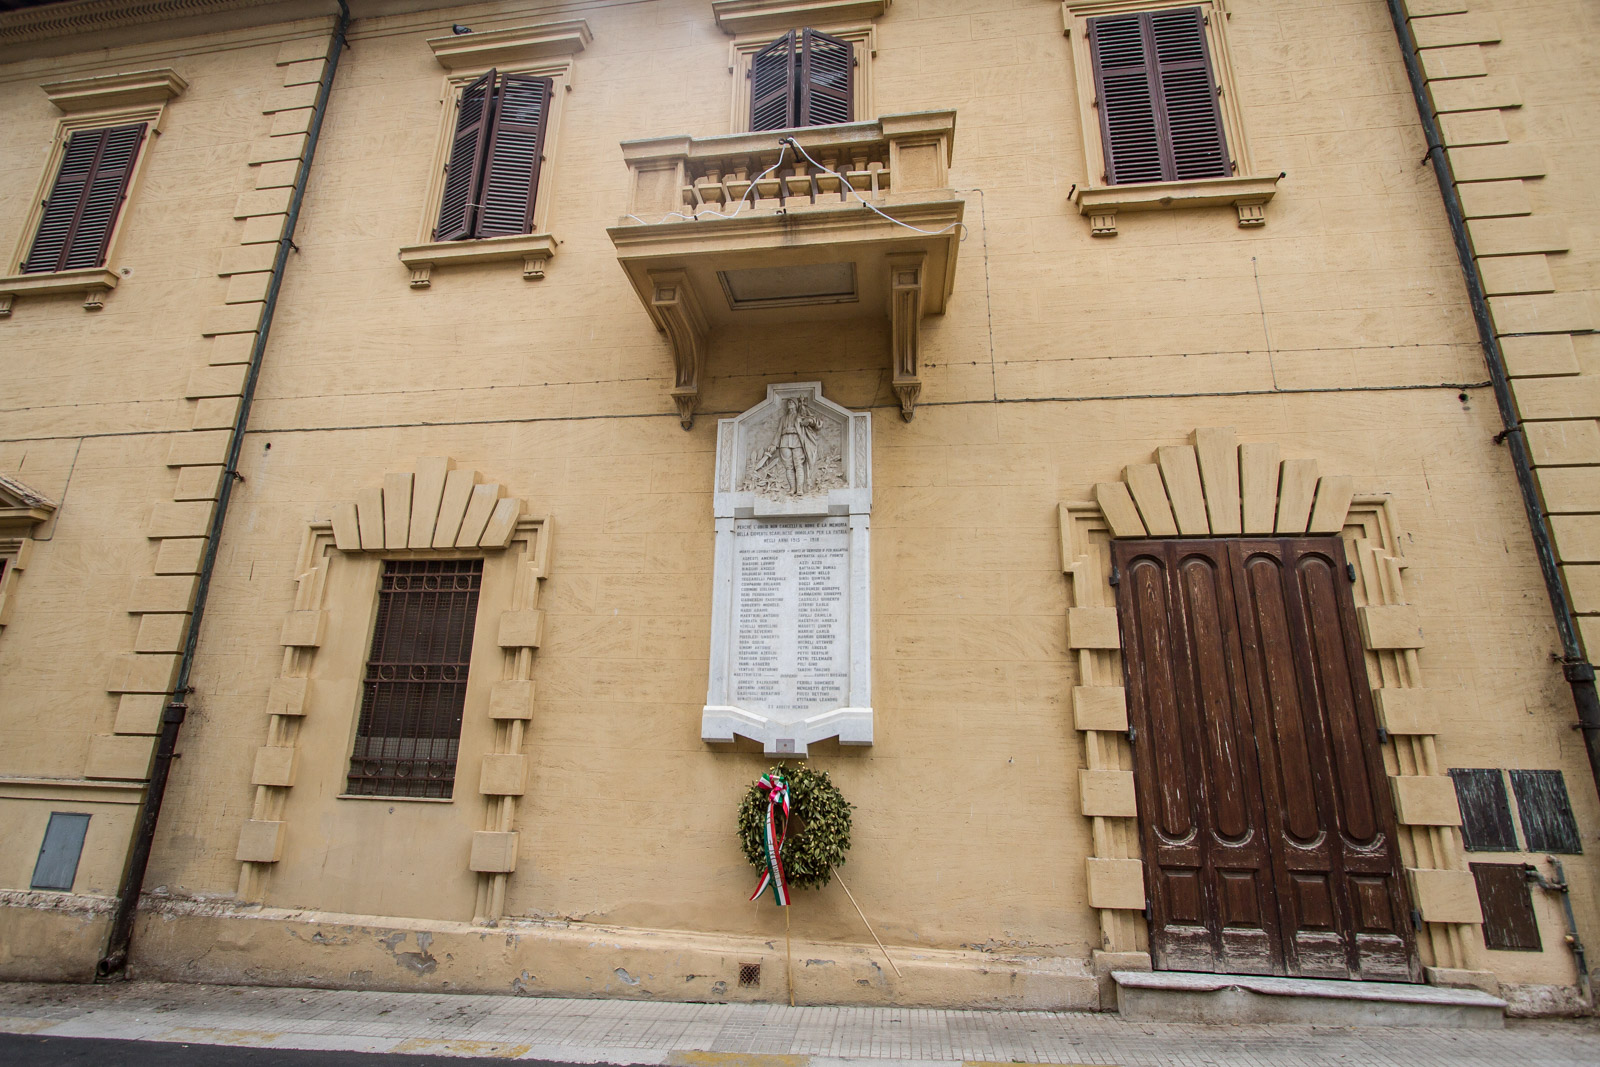 The centre of Scarlino village has plenty of reminders of history.